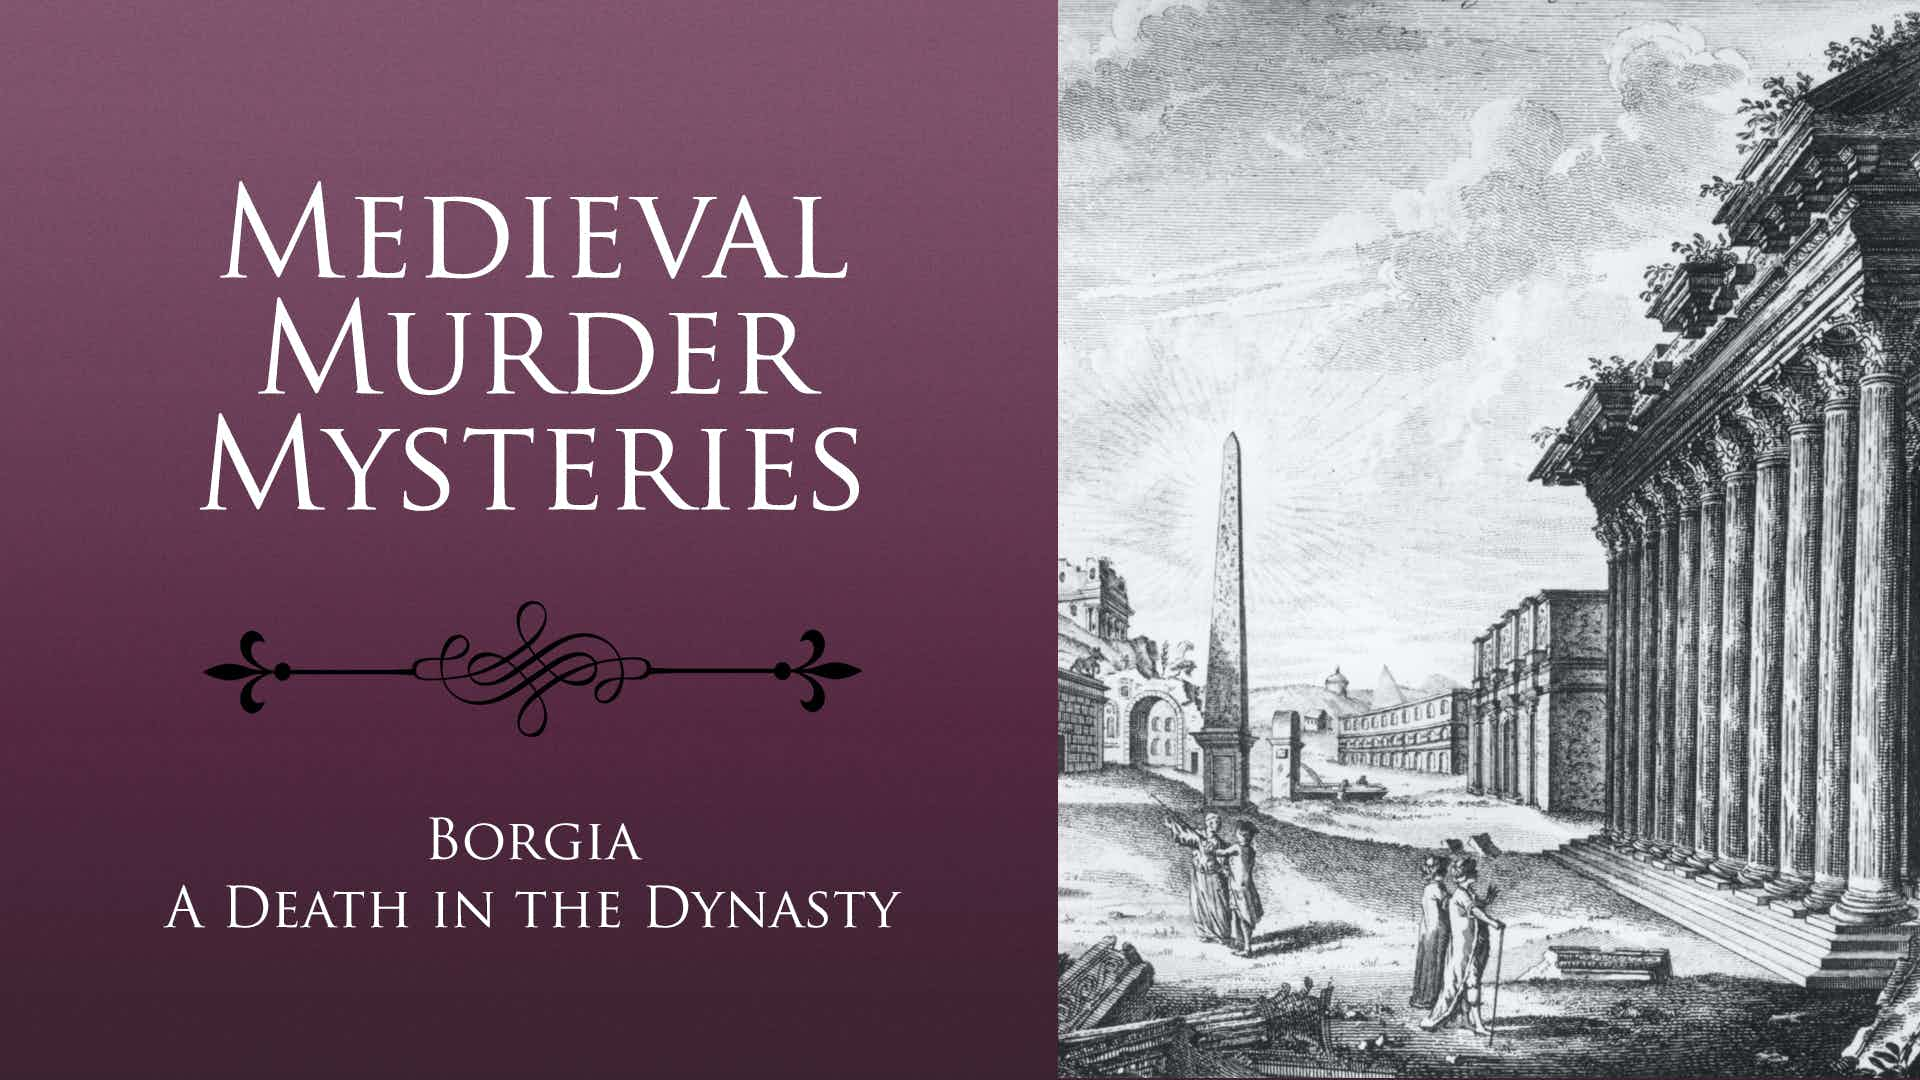 Medieval Murder Mysteries. A Death in the Dynasty